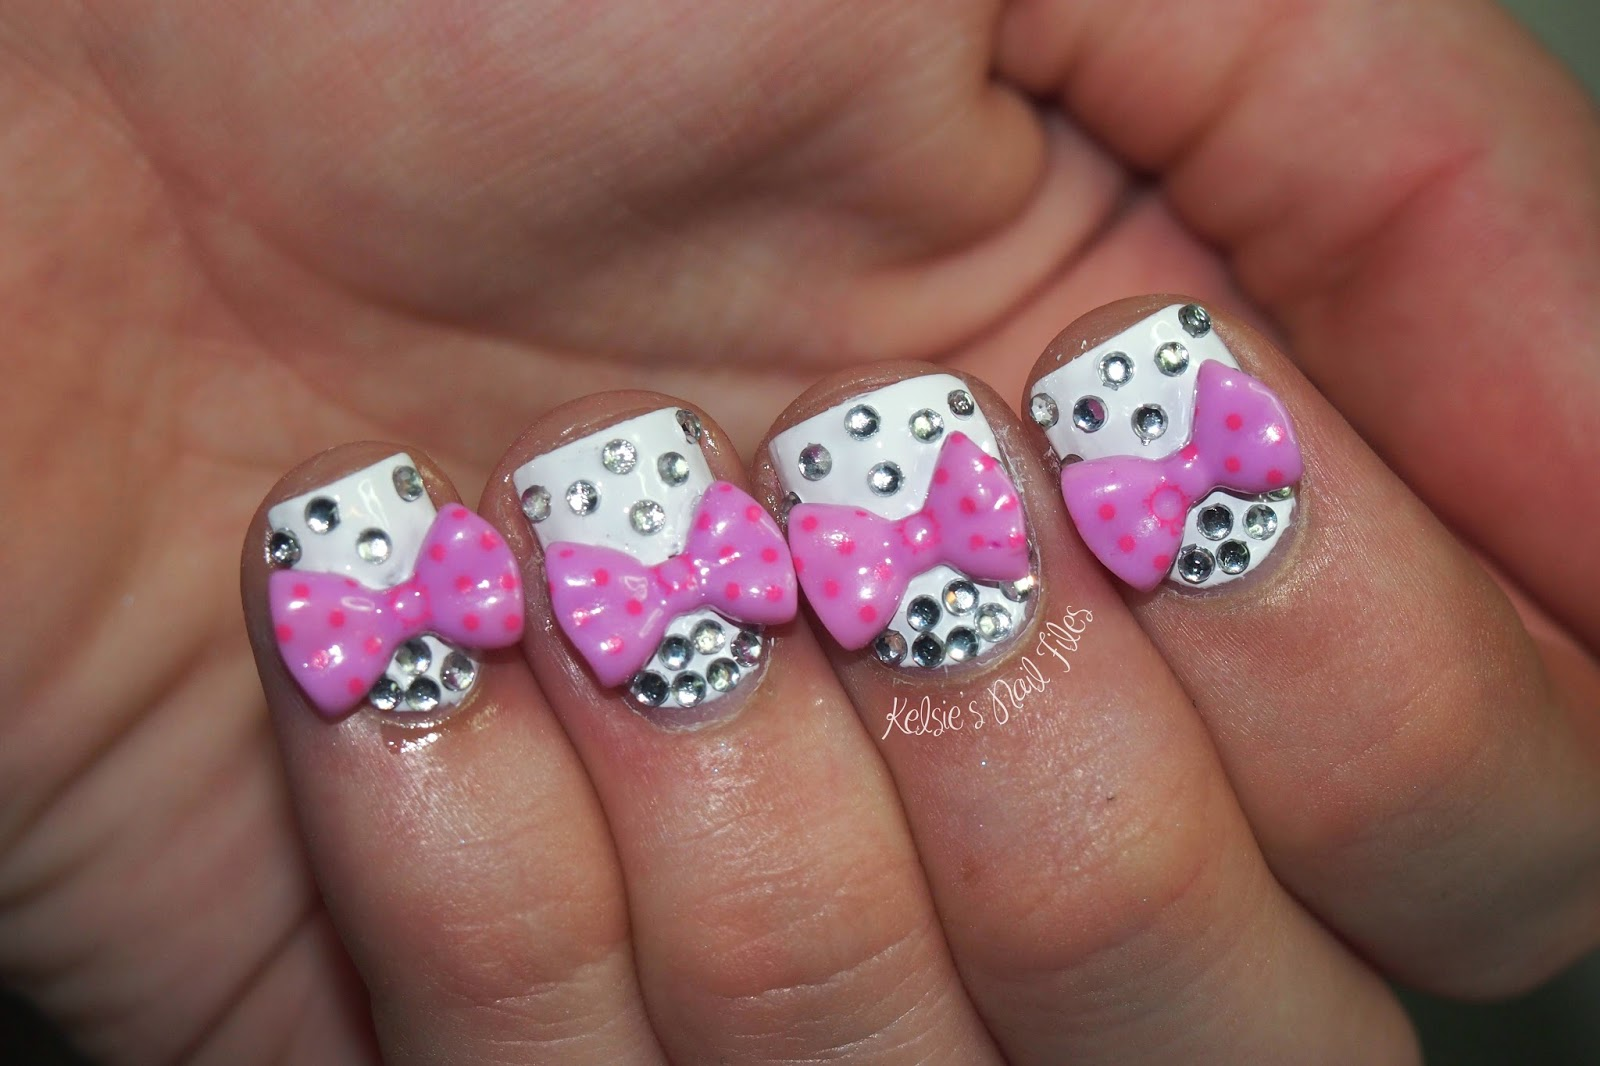 Kelsies nail files february 2014 i started with a base of opi alpine snow and then using nail art glue i placed each bow and then followed with small rhinestones also from born pretty prinsesfo Choice Image